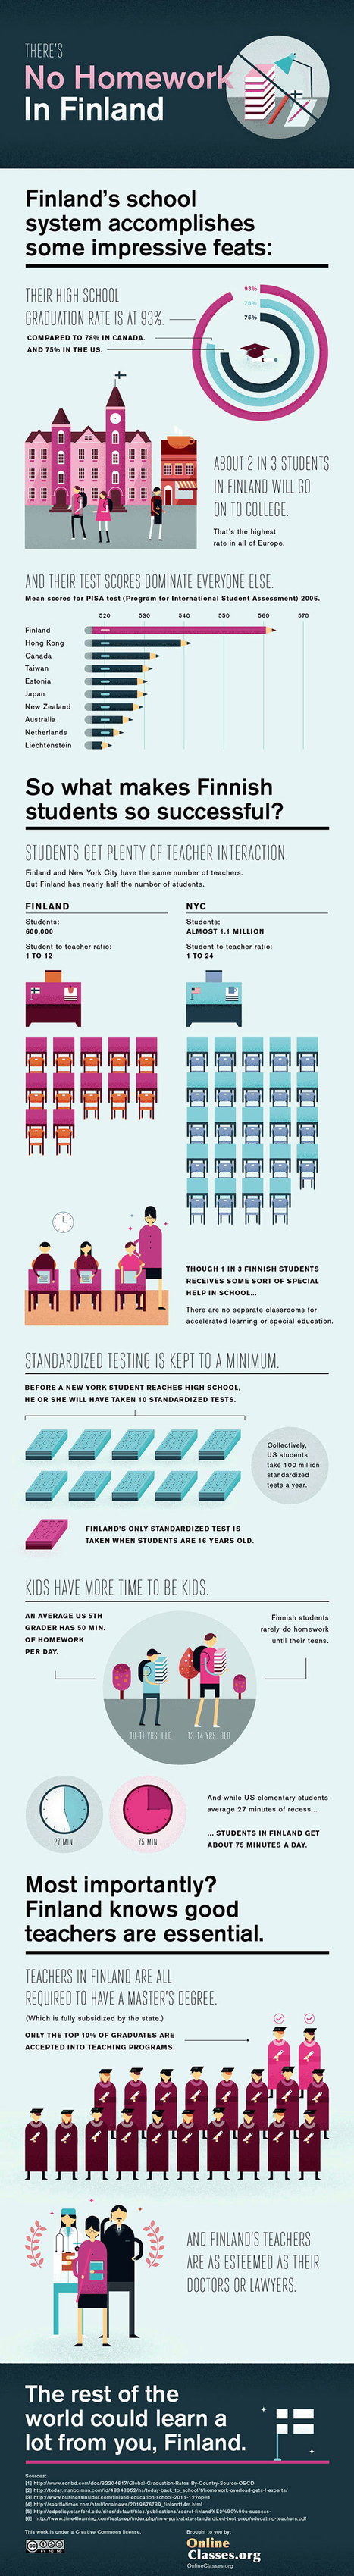 Finland's School System - Infographic | Wicked Good Technology | Scoop.it